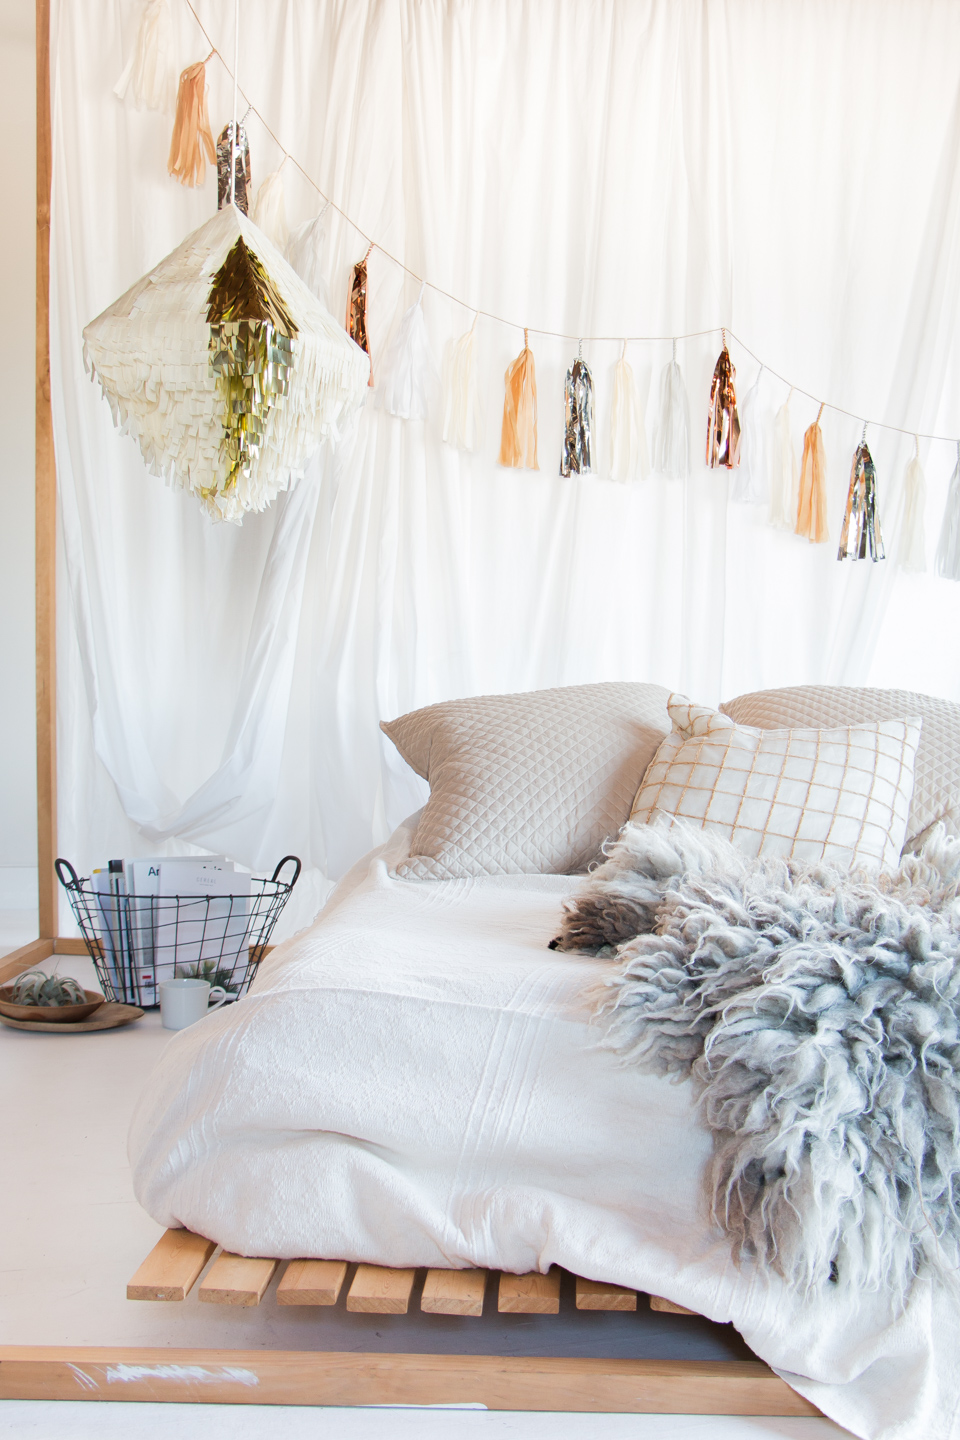 A day bed made extra dreamy with a  Neutral Tassel Garland  and  Ivory and Gold Shag Piñata . Both by  Prospect Goods .